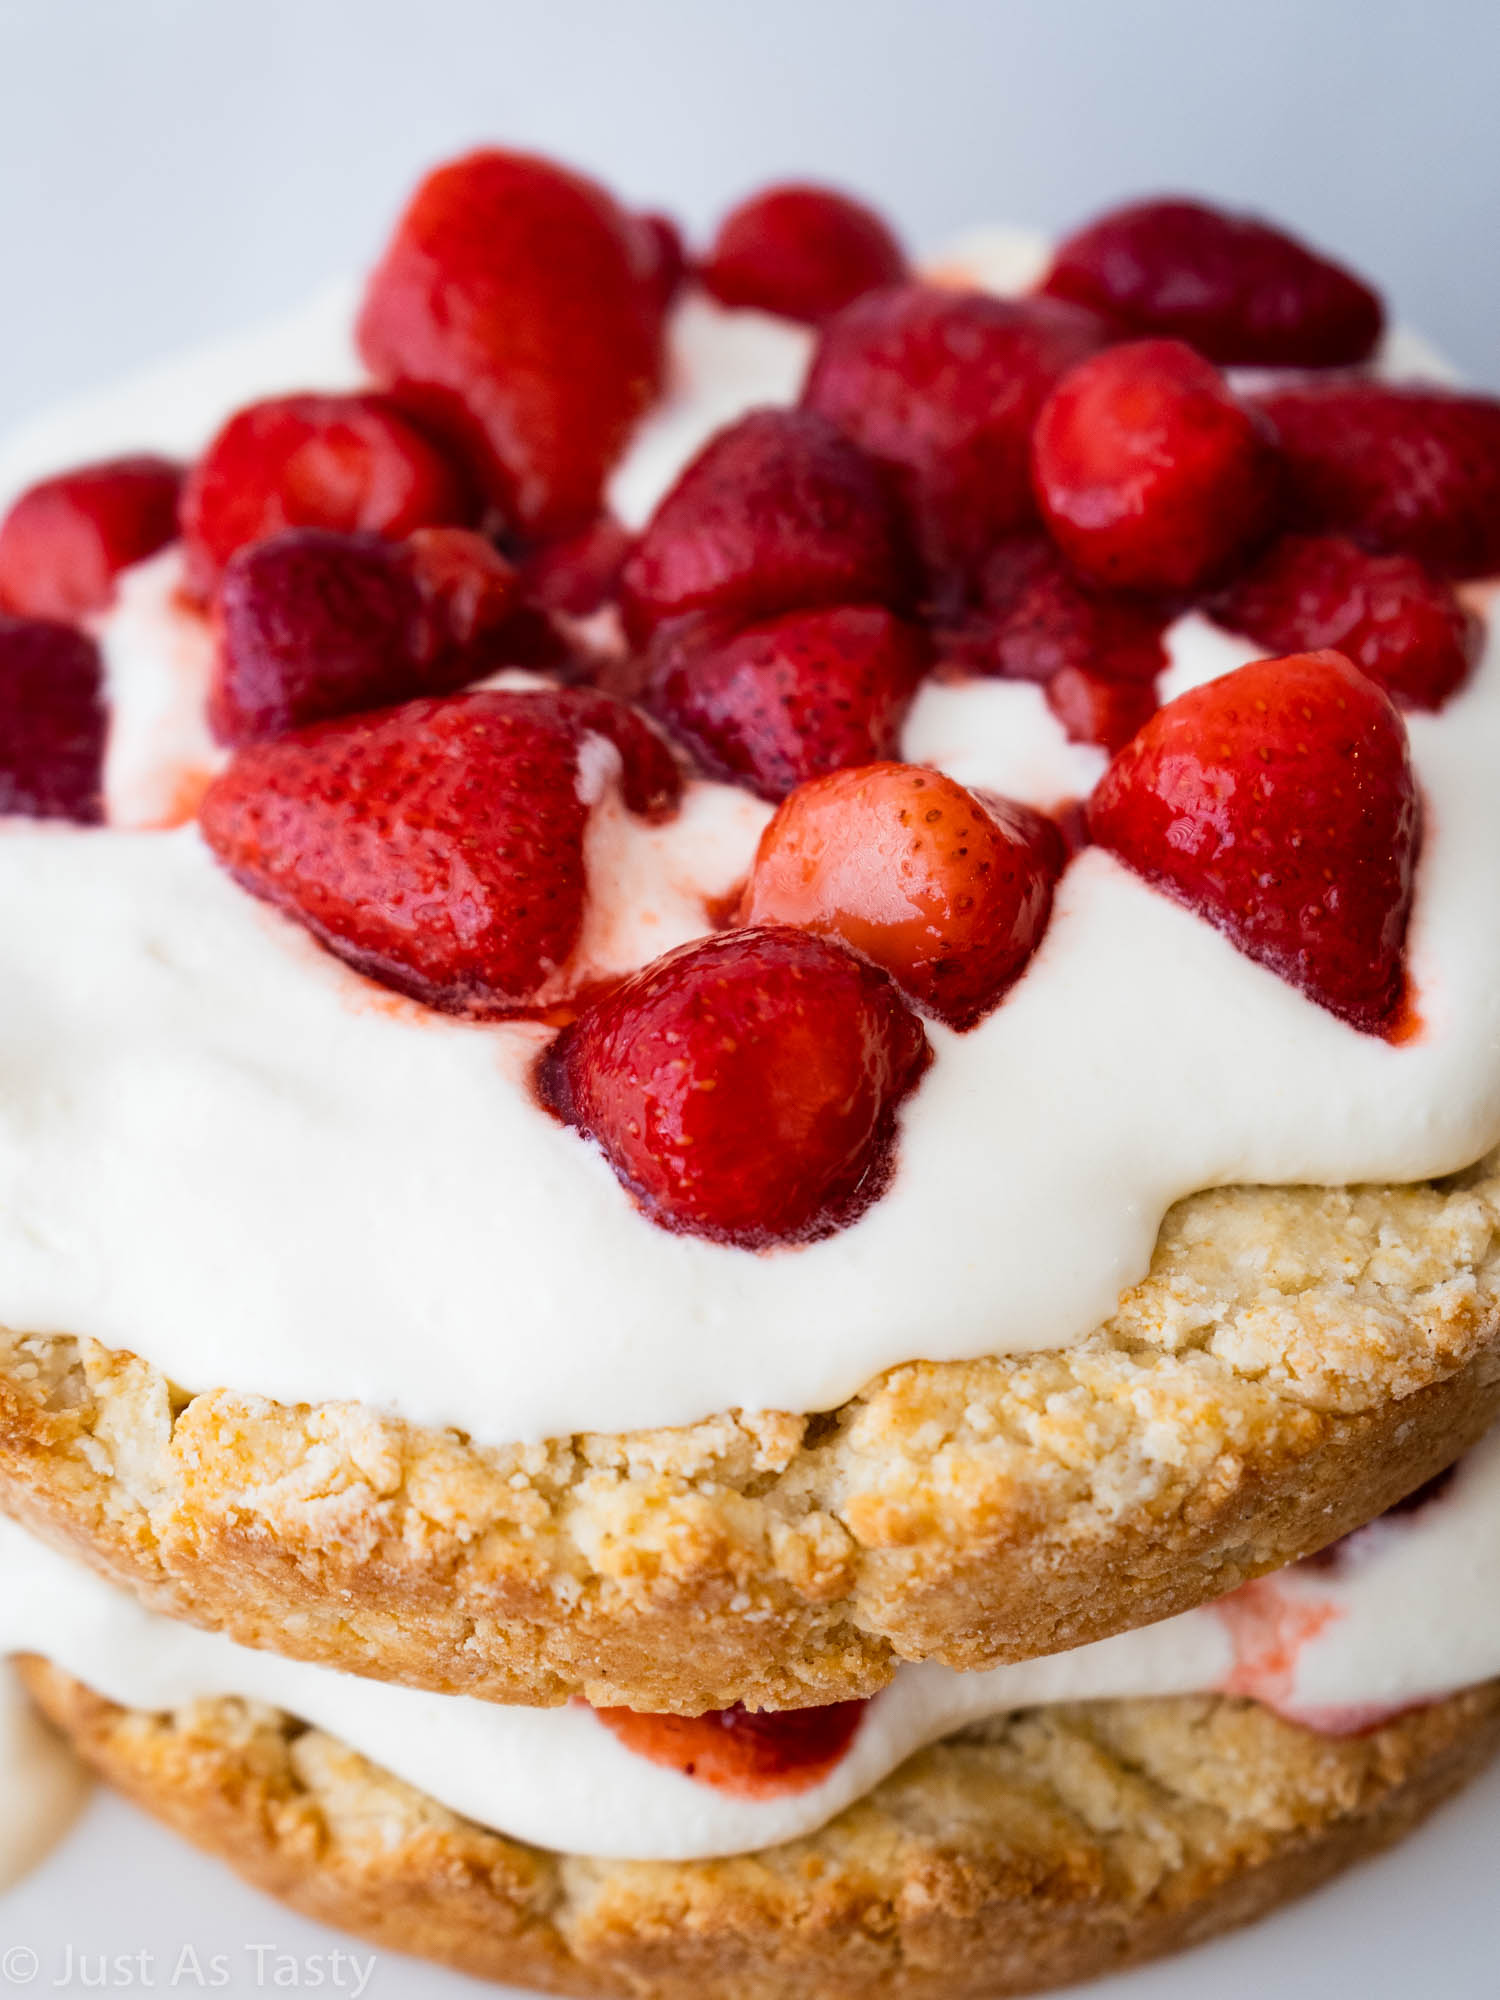 Close-up of a cake topped with strawberries and whipped cream.